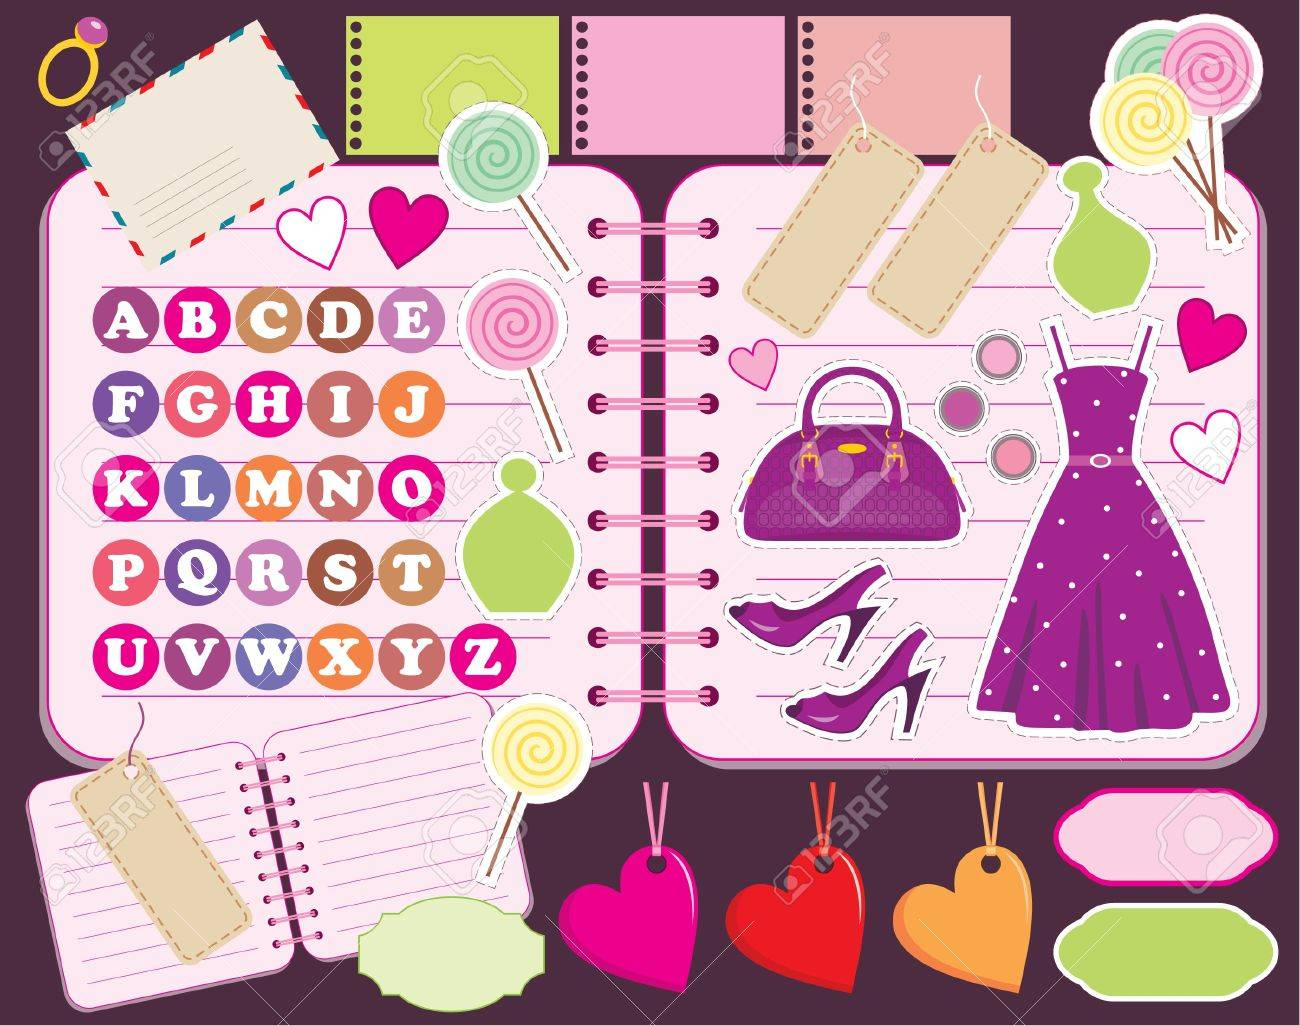 How to scrapbook letters - Scrapbook Elements With Letters And Clothes Stock Vector 12189934